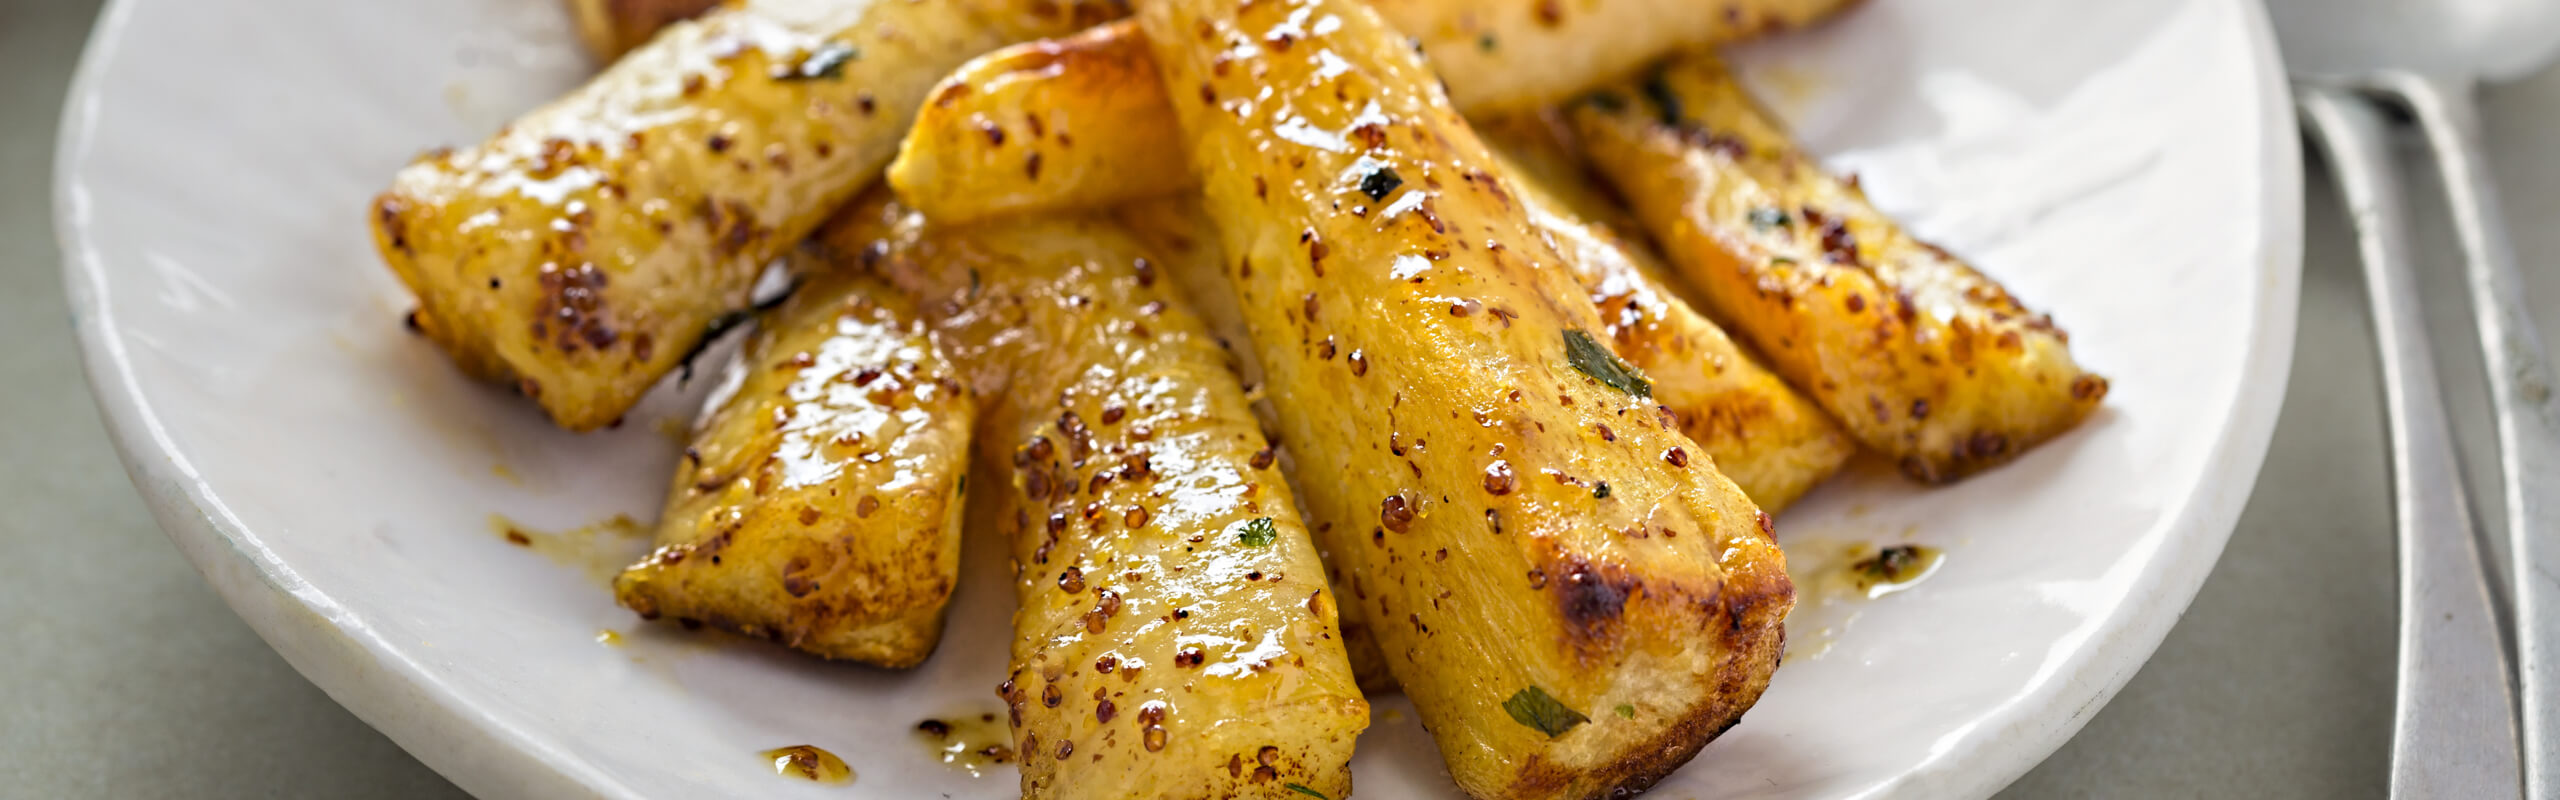 Feature Image: Parsnips with Chili and Garlic